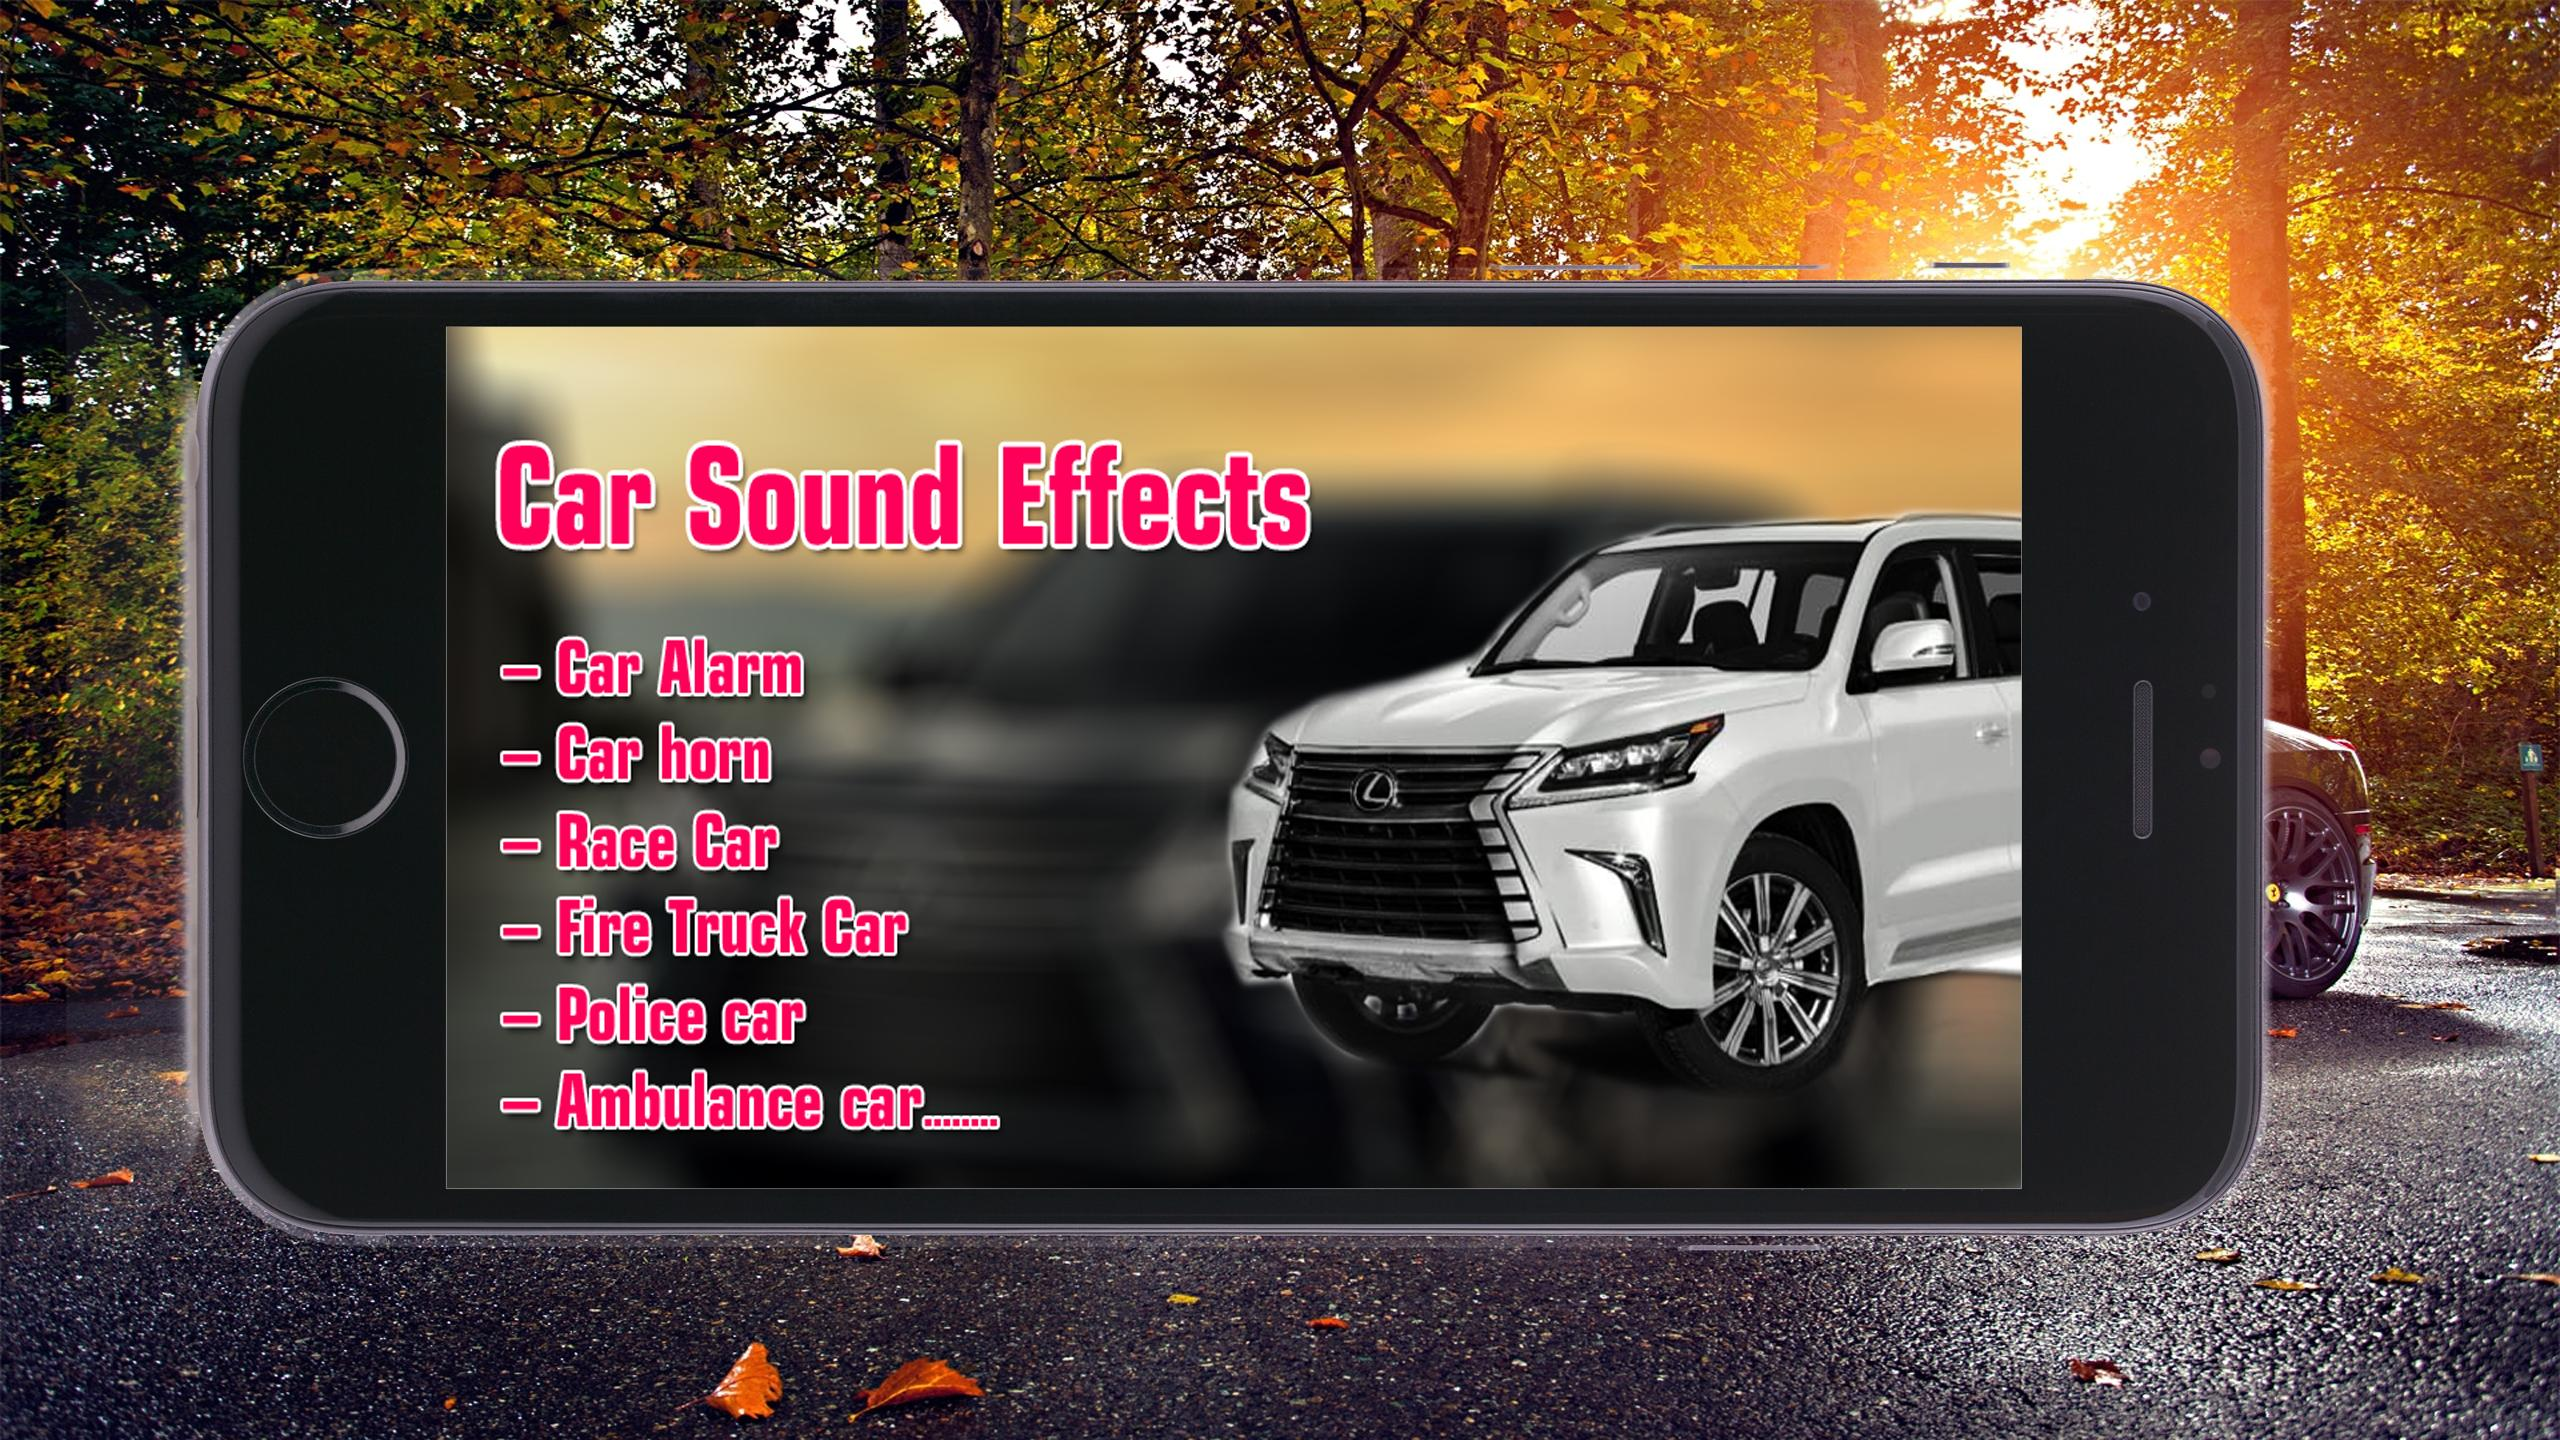 Car Sound Effects | Upcoming New Car Release 2020